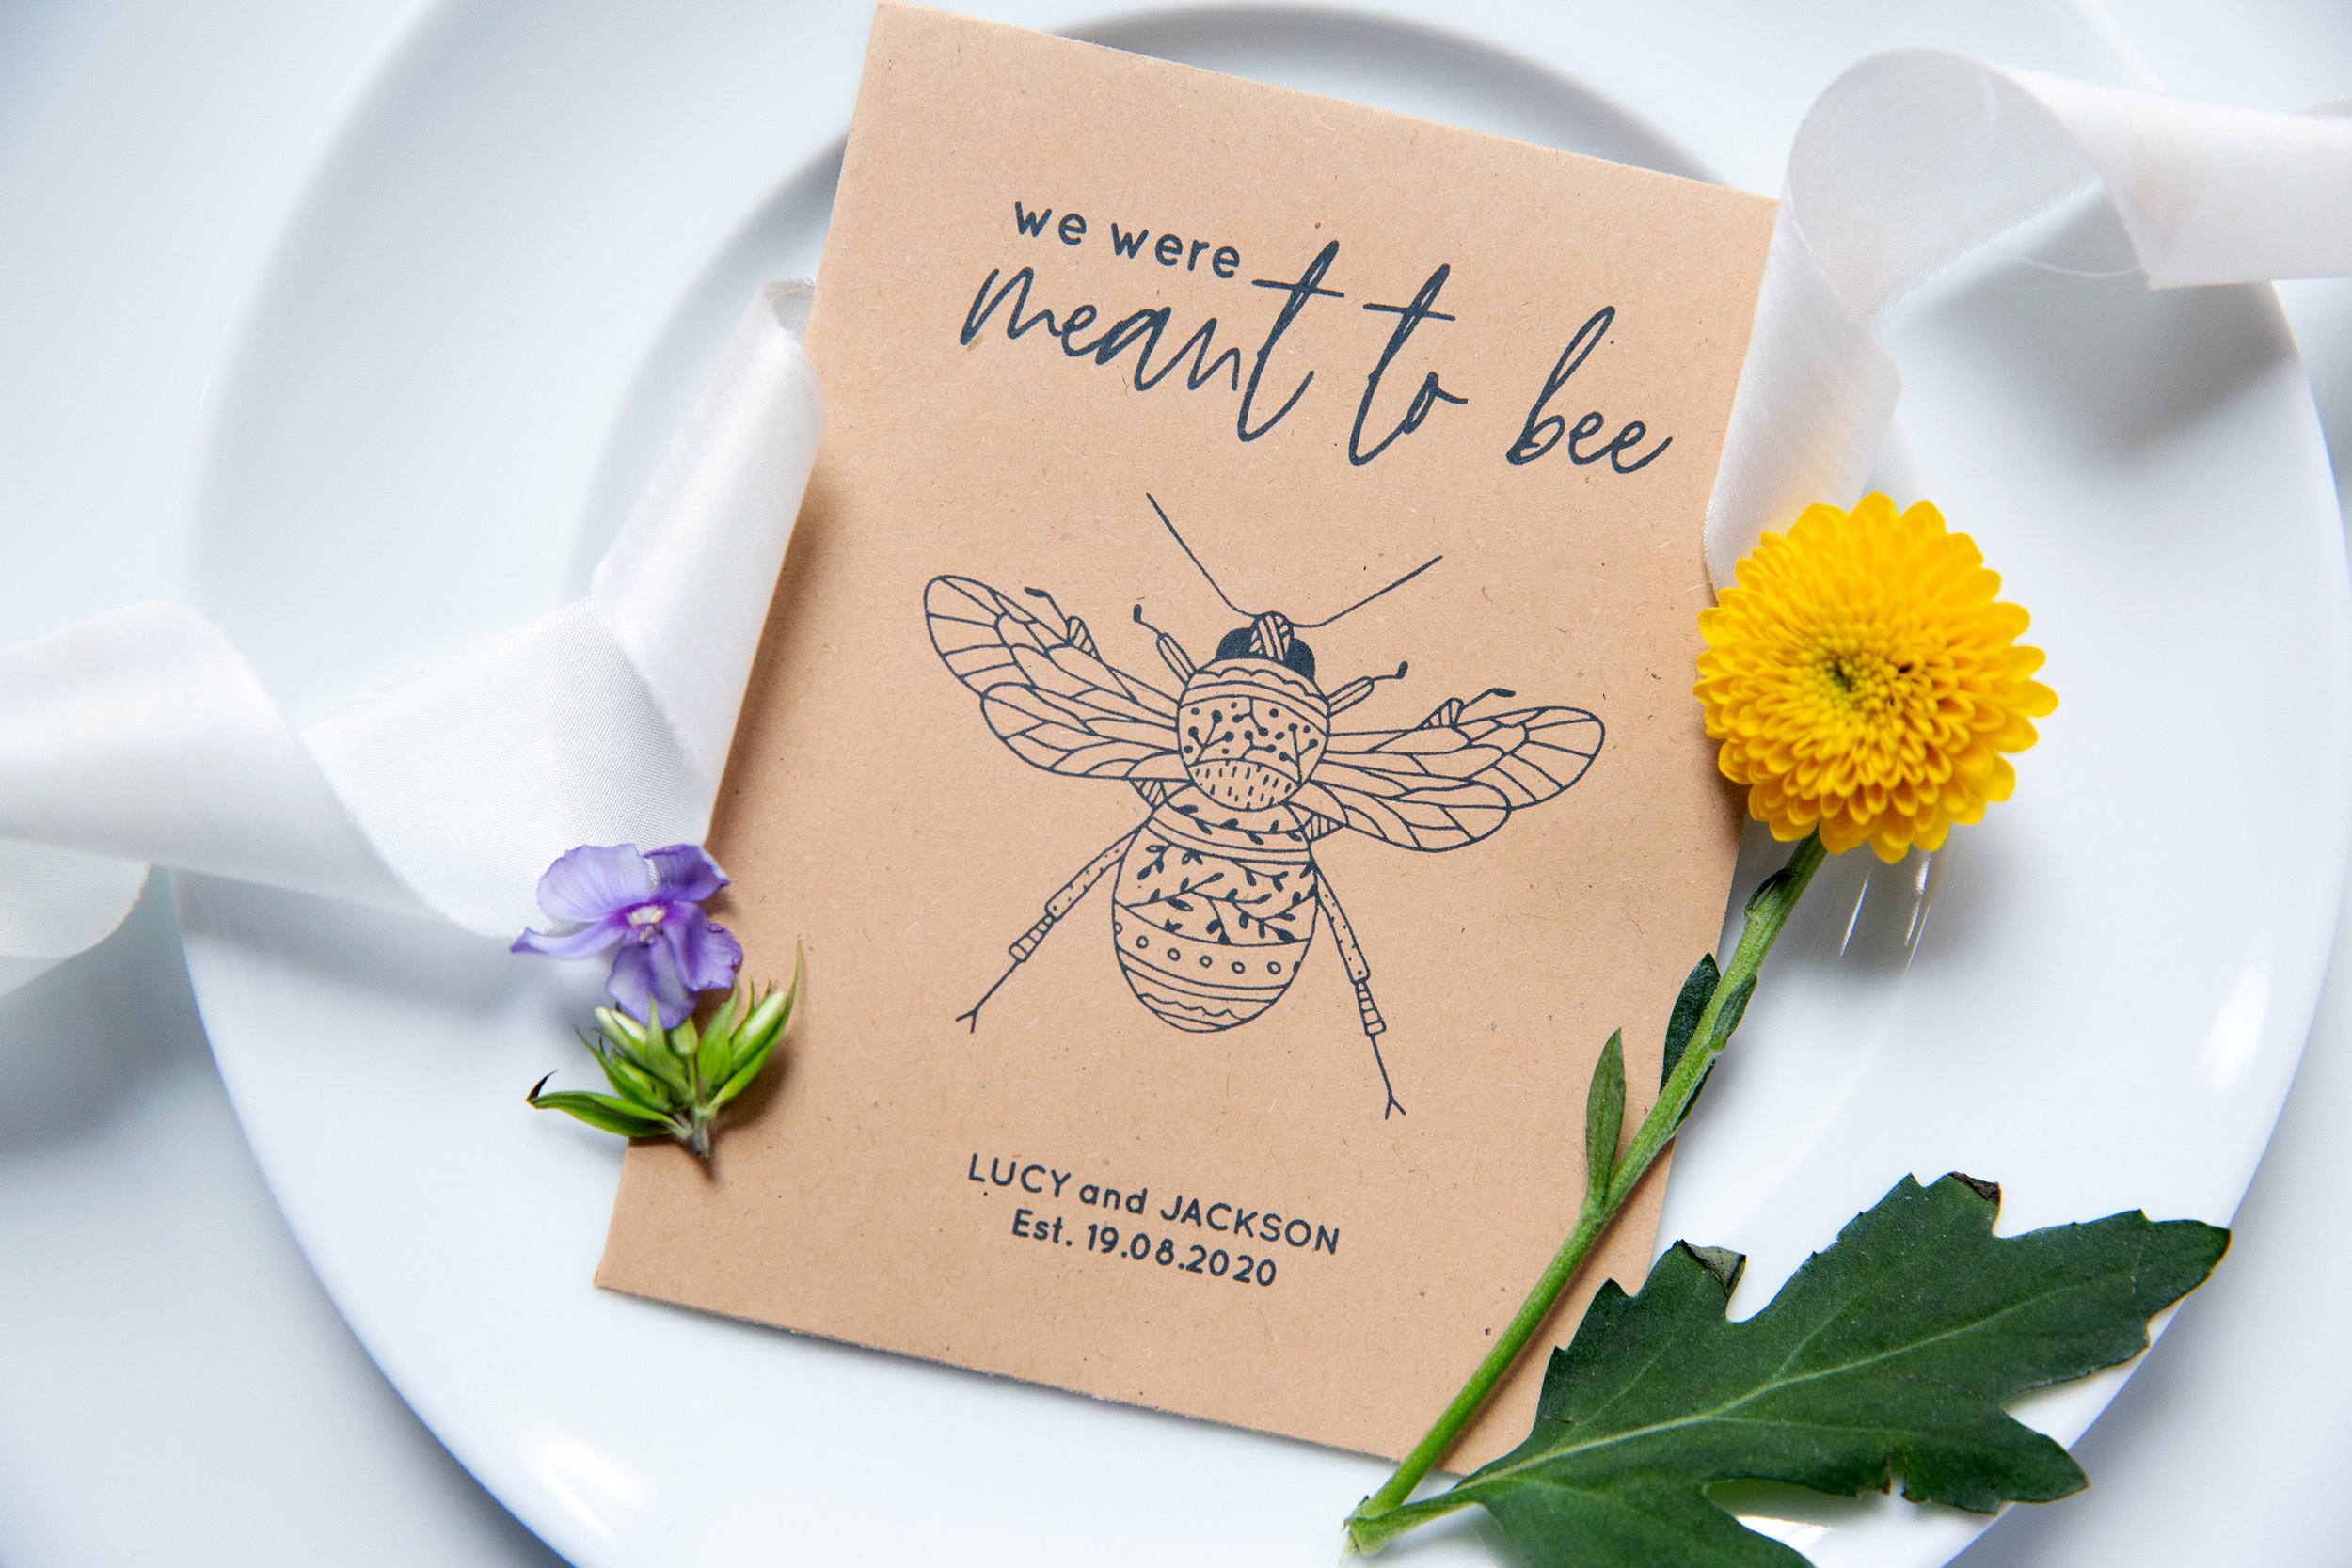 Wedding - Meant to bee (Lucy & Jackson) 3.jpg